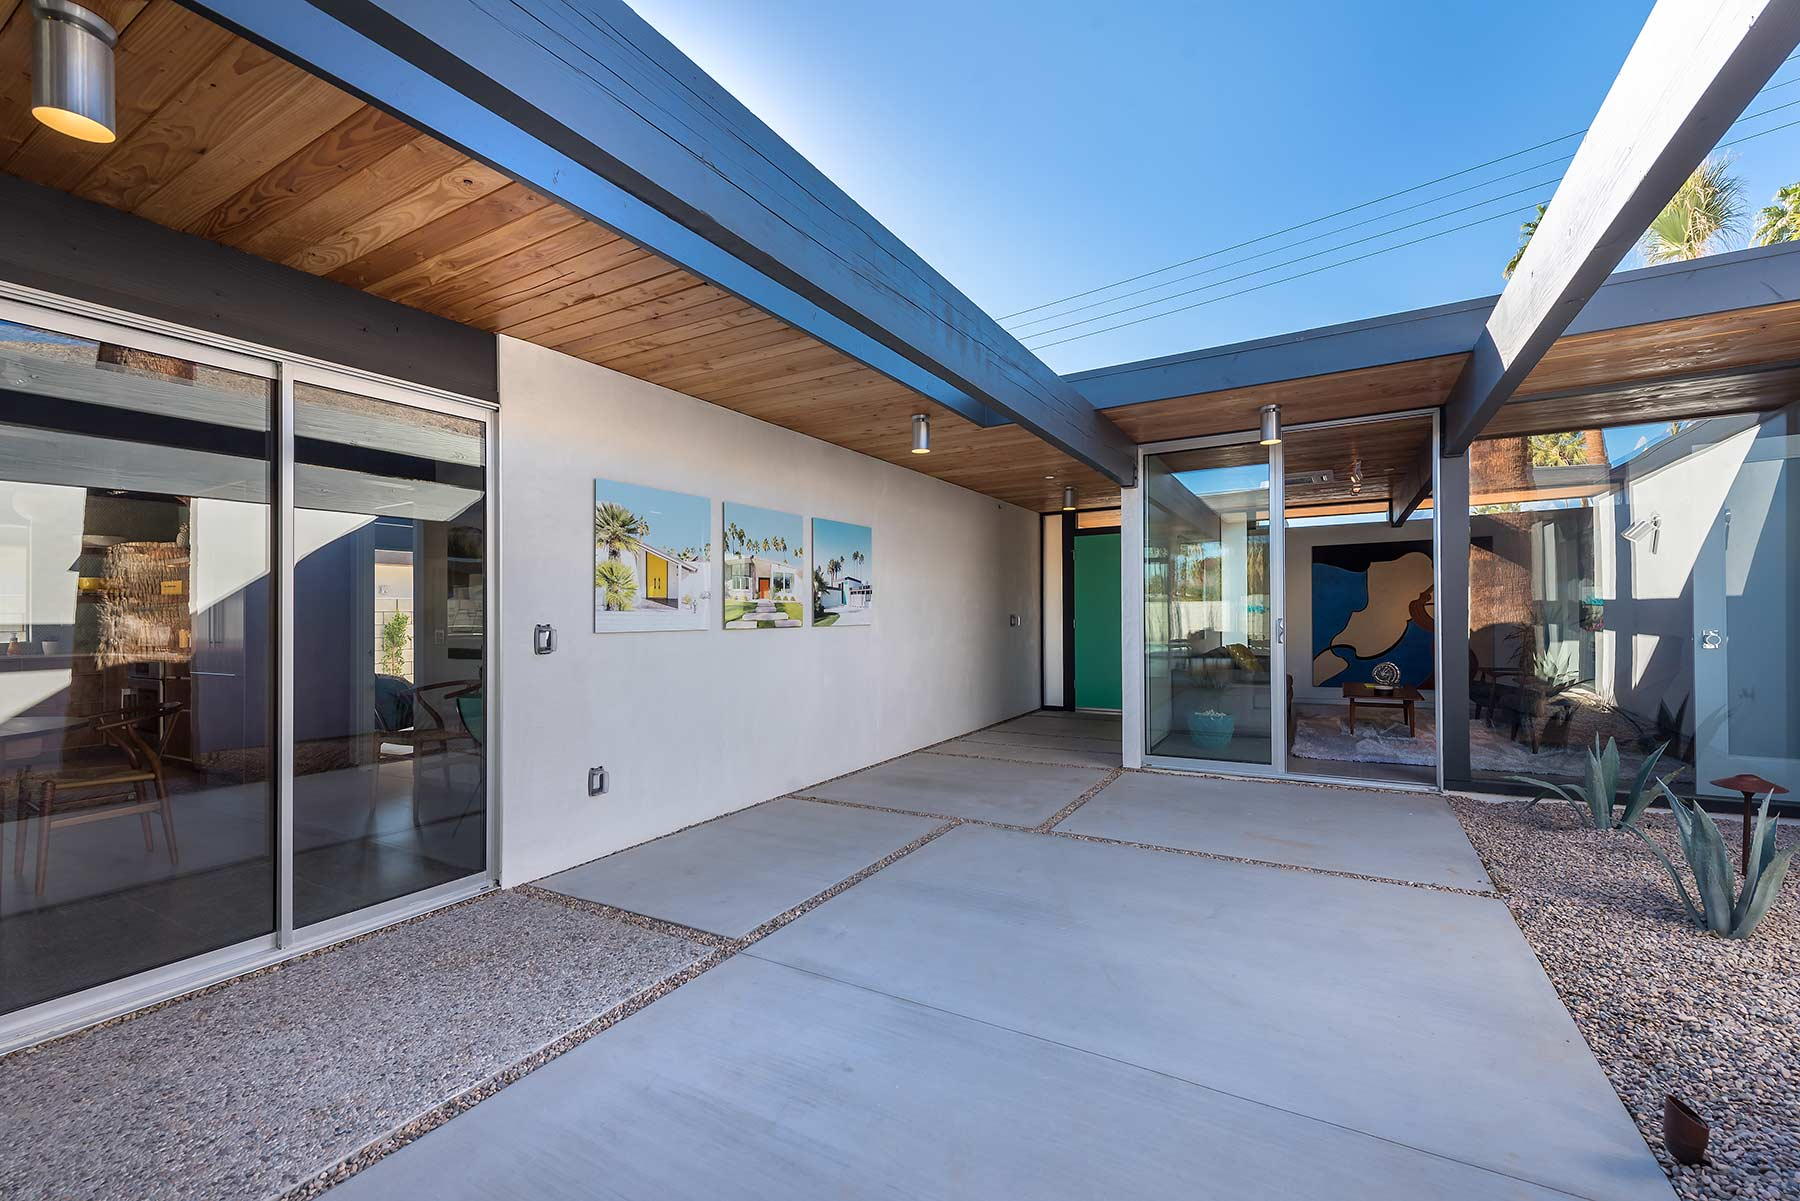 The Desert Eichler 3 atrium